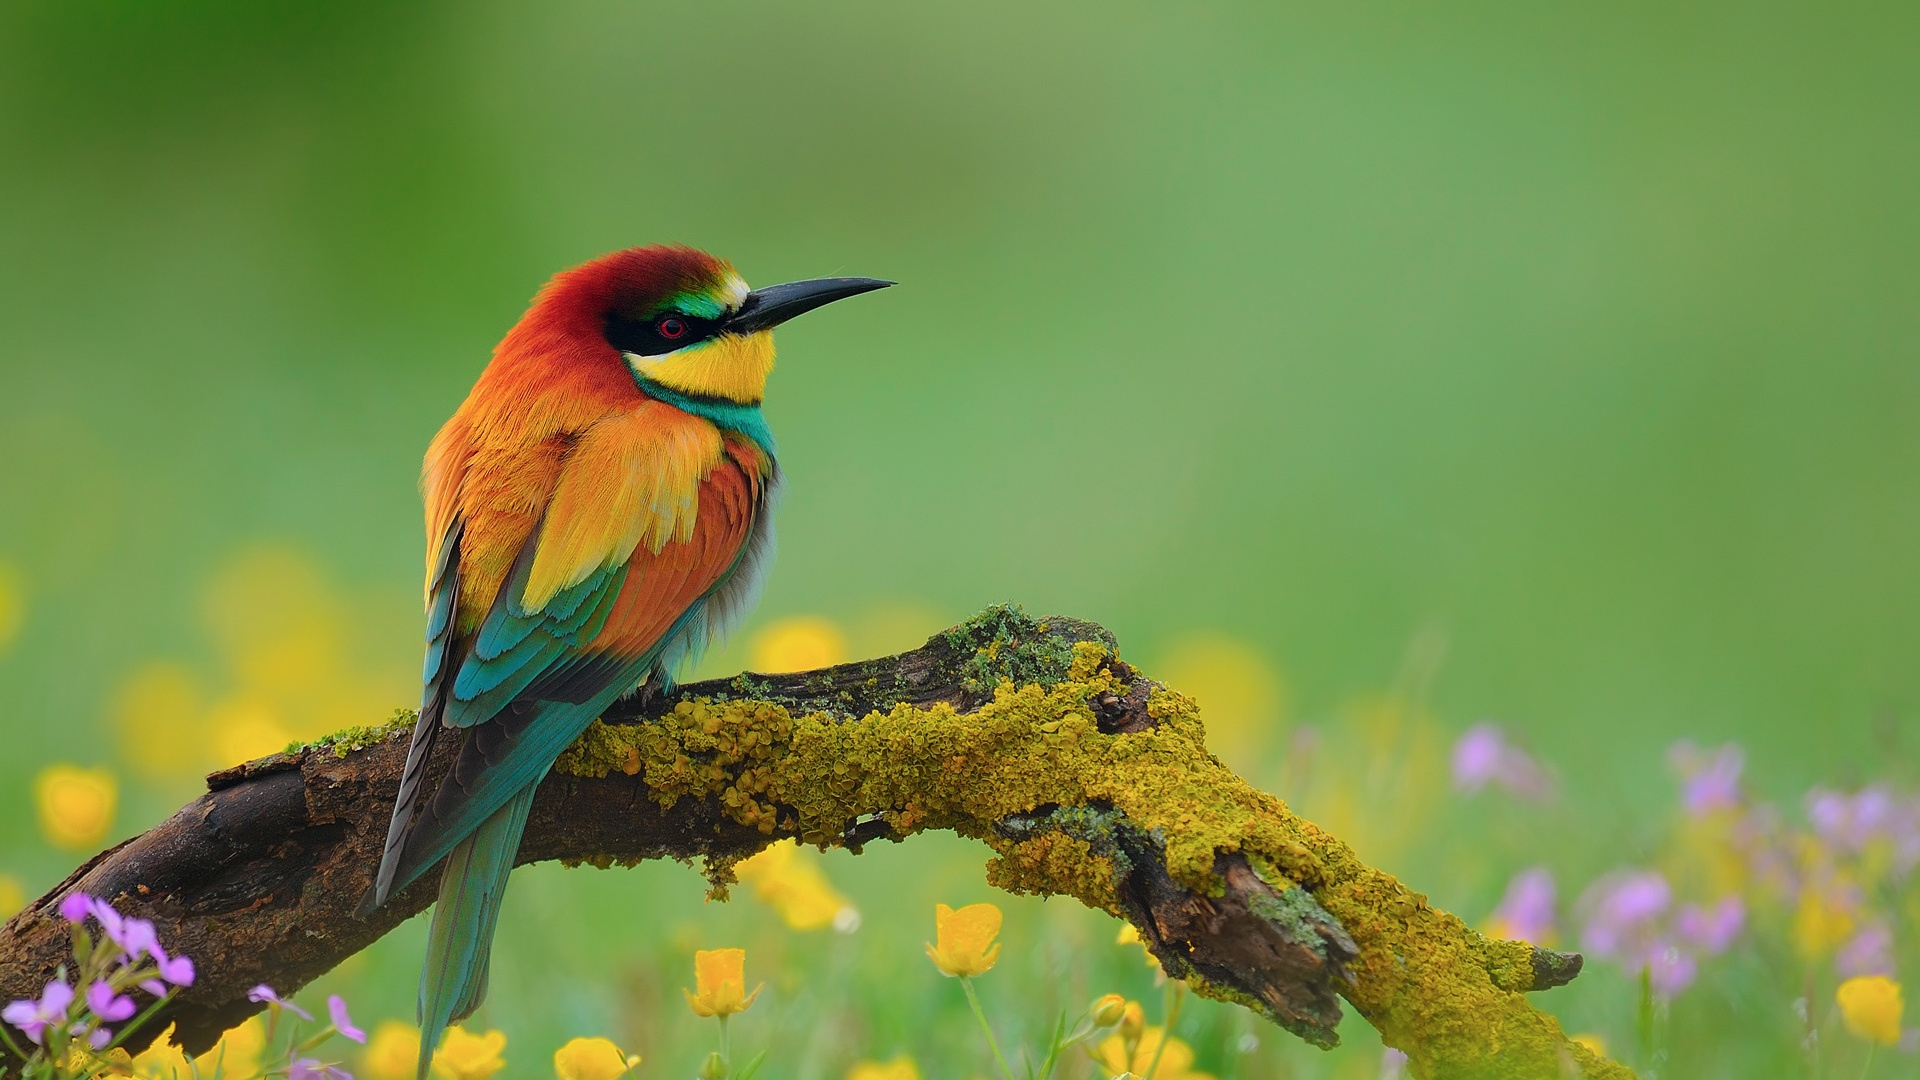 Birds 1080p Wallpaper  WallpaperSafari